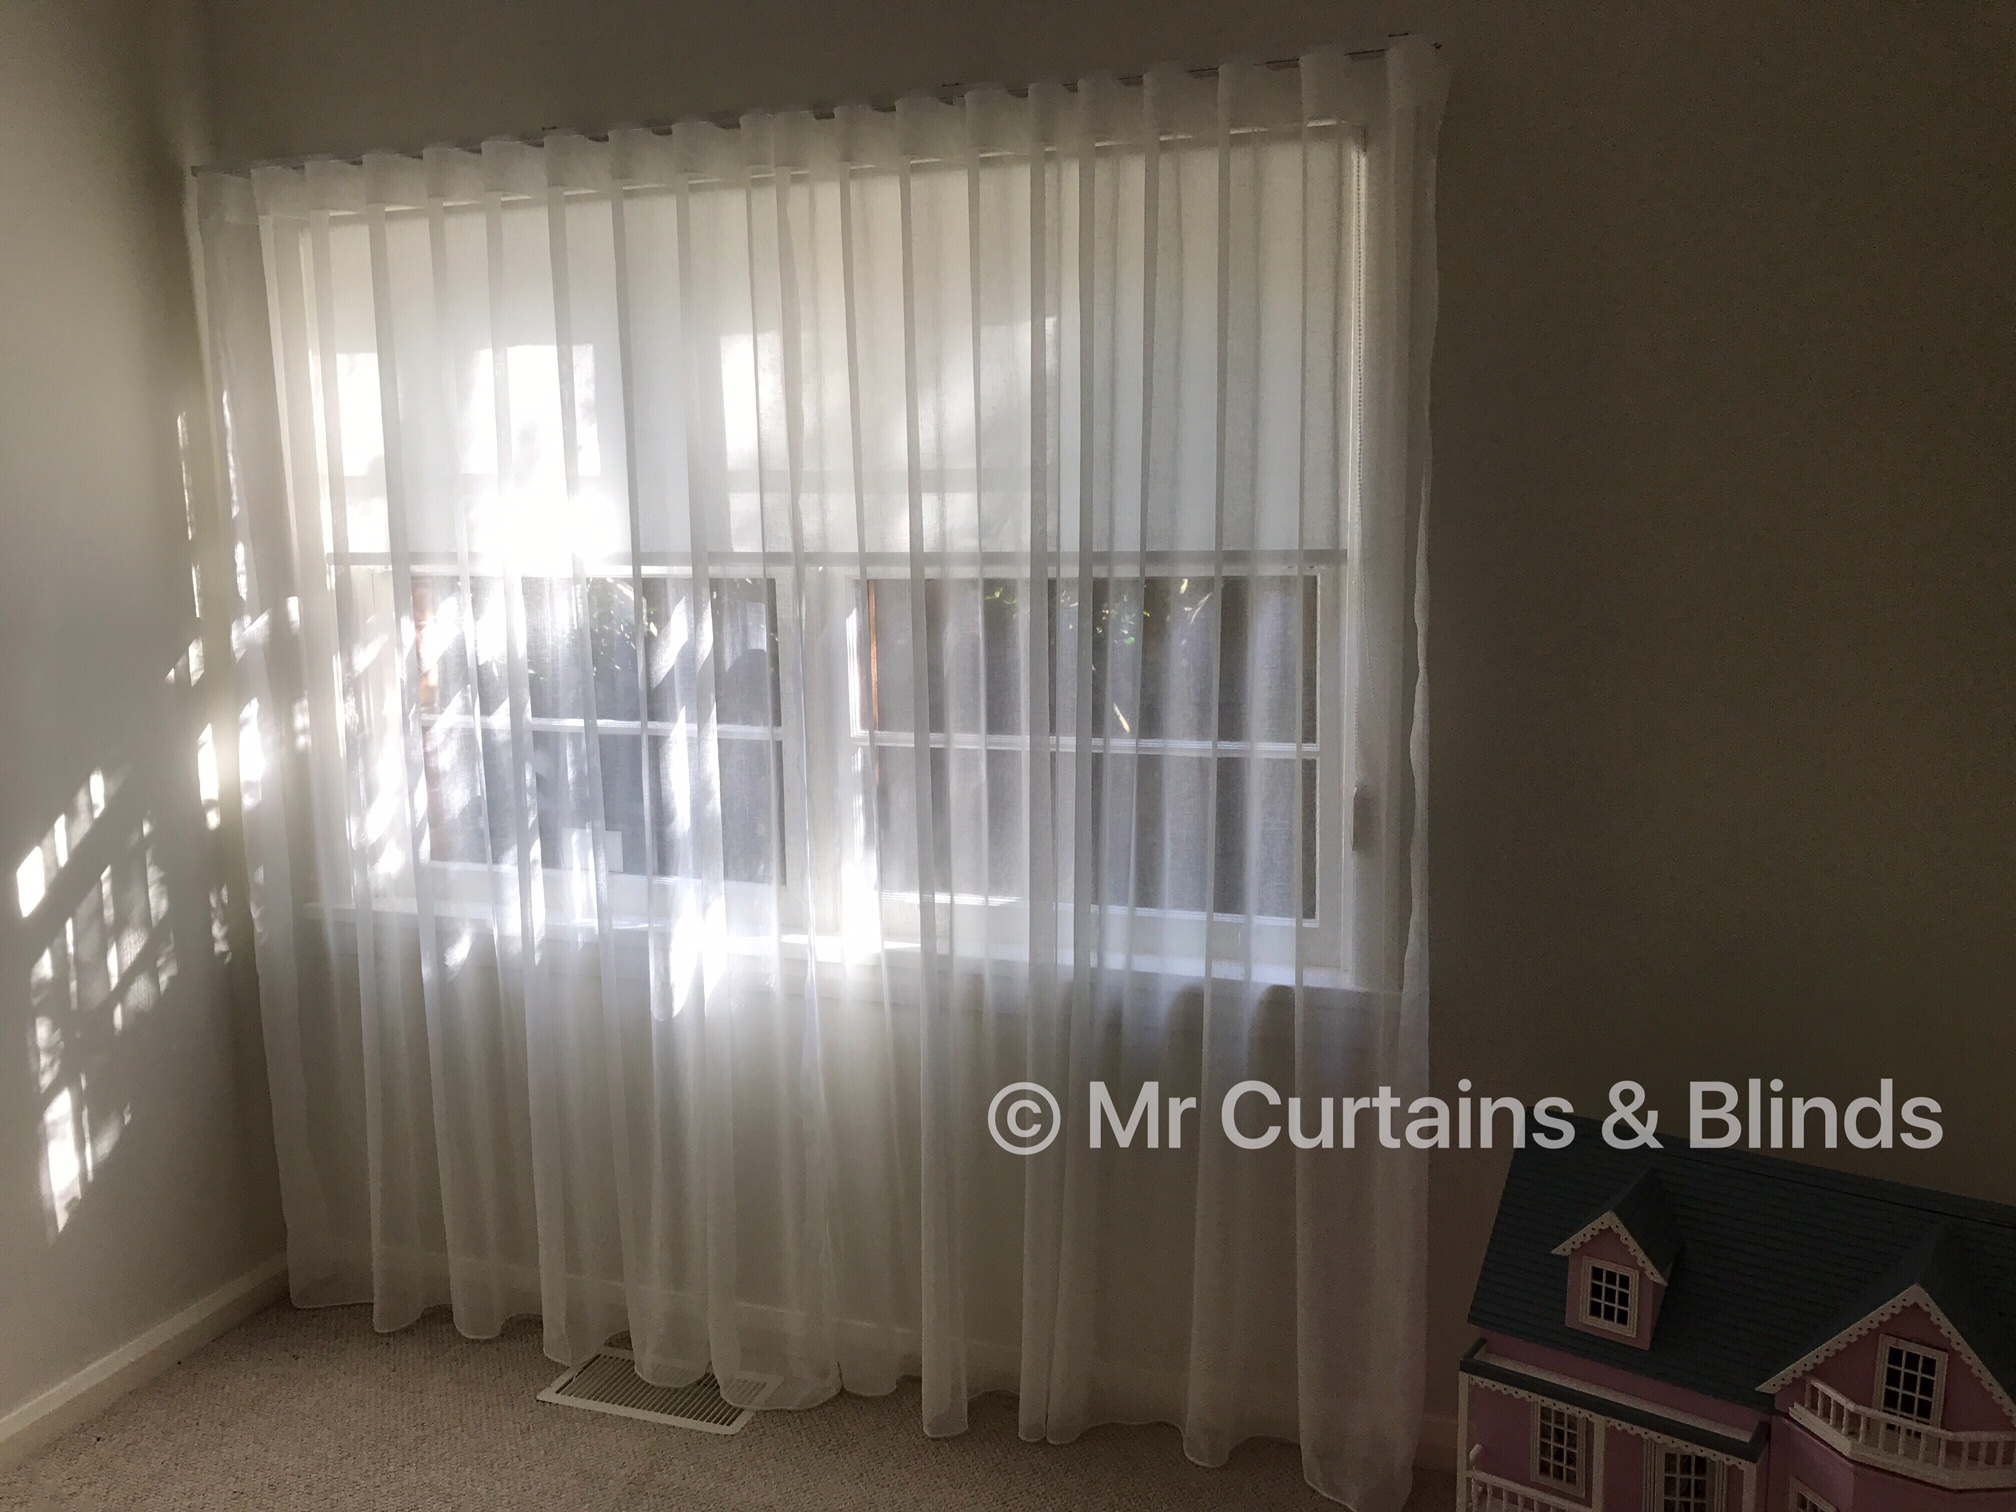 blinds blind of vertical image and decorating attachedautomatic ideas for curtain full google go windows rods curtains diy rod to bali sheers inspirations search over with fabulous size